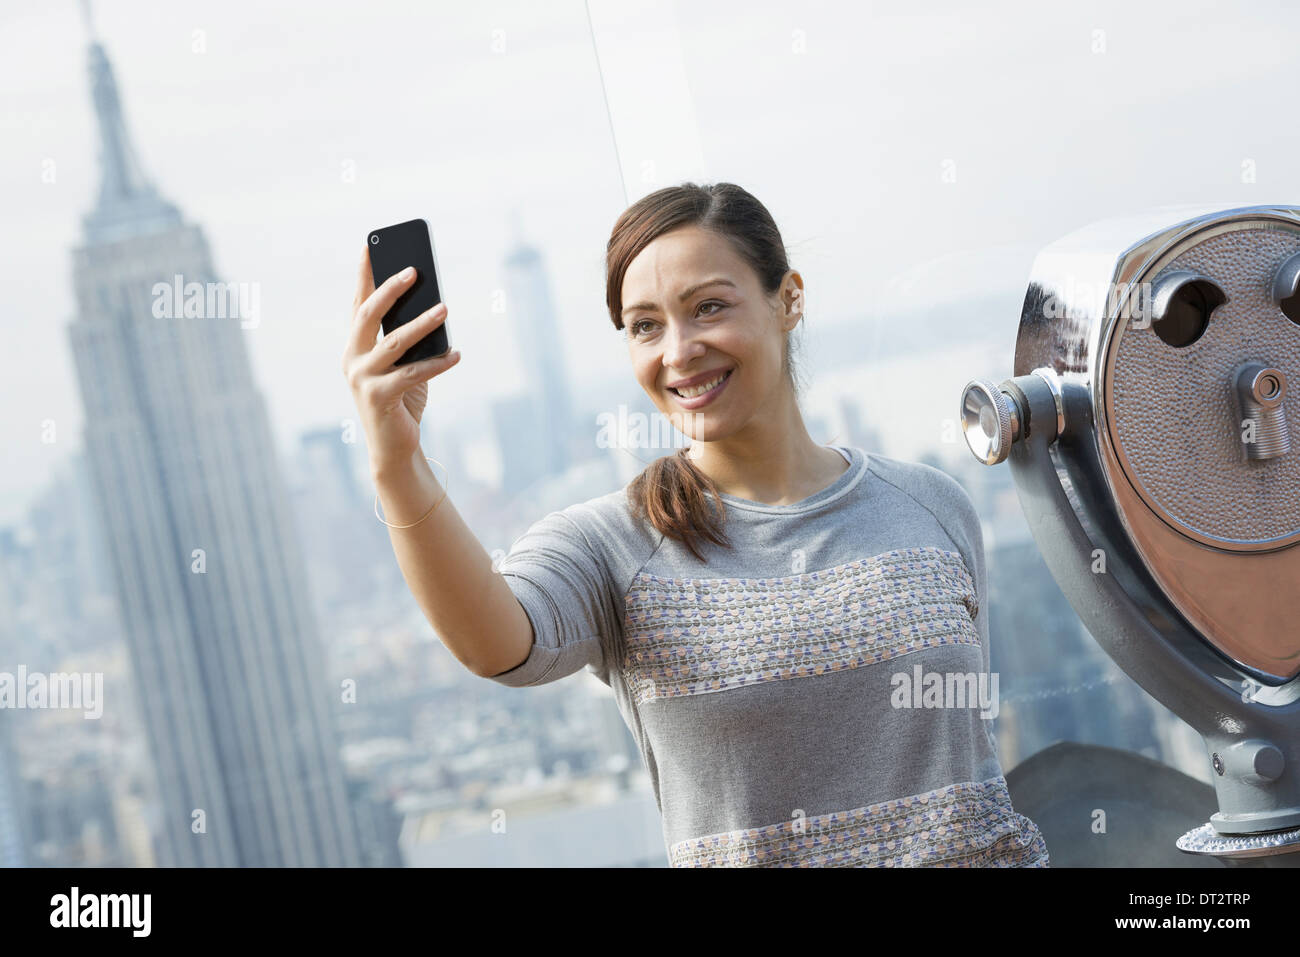 View over cityA woman using her smart phone to photograph the view - Stock Image